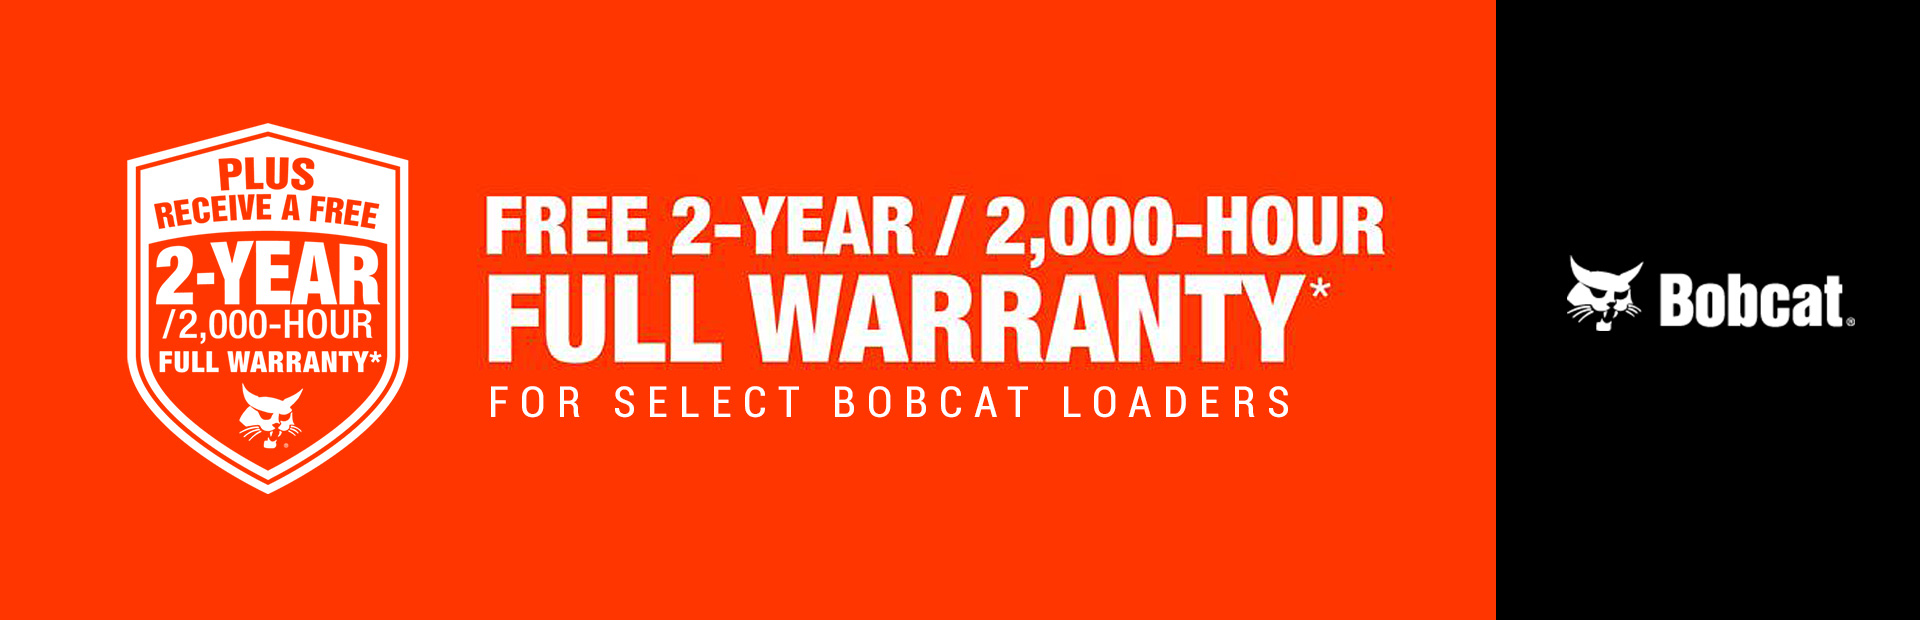 2Yr, 2K-Hr Full Warranty For Select Bobcat Loaders